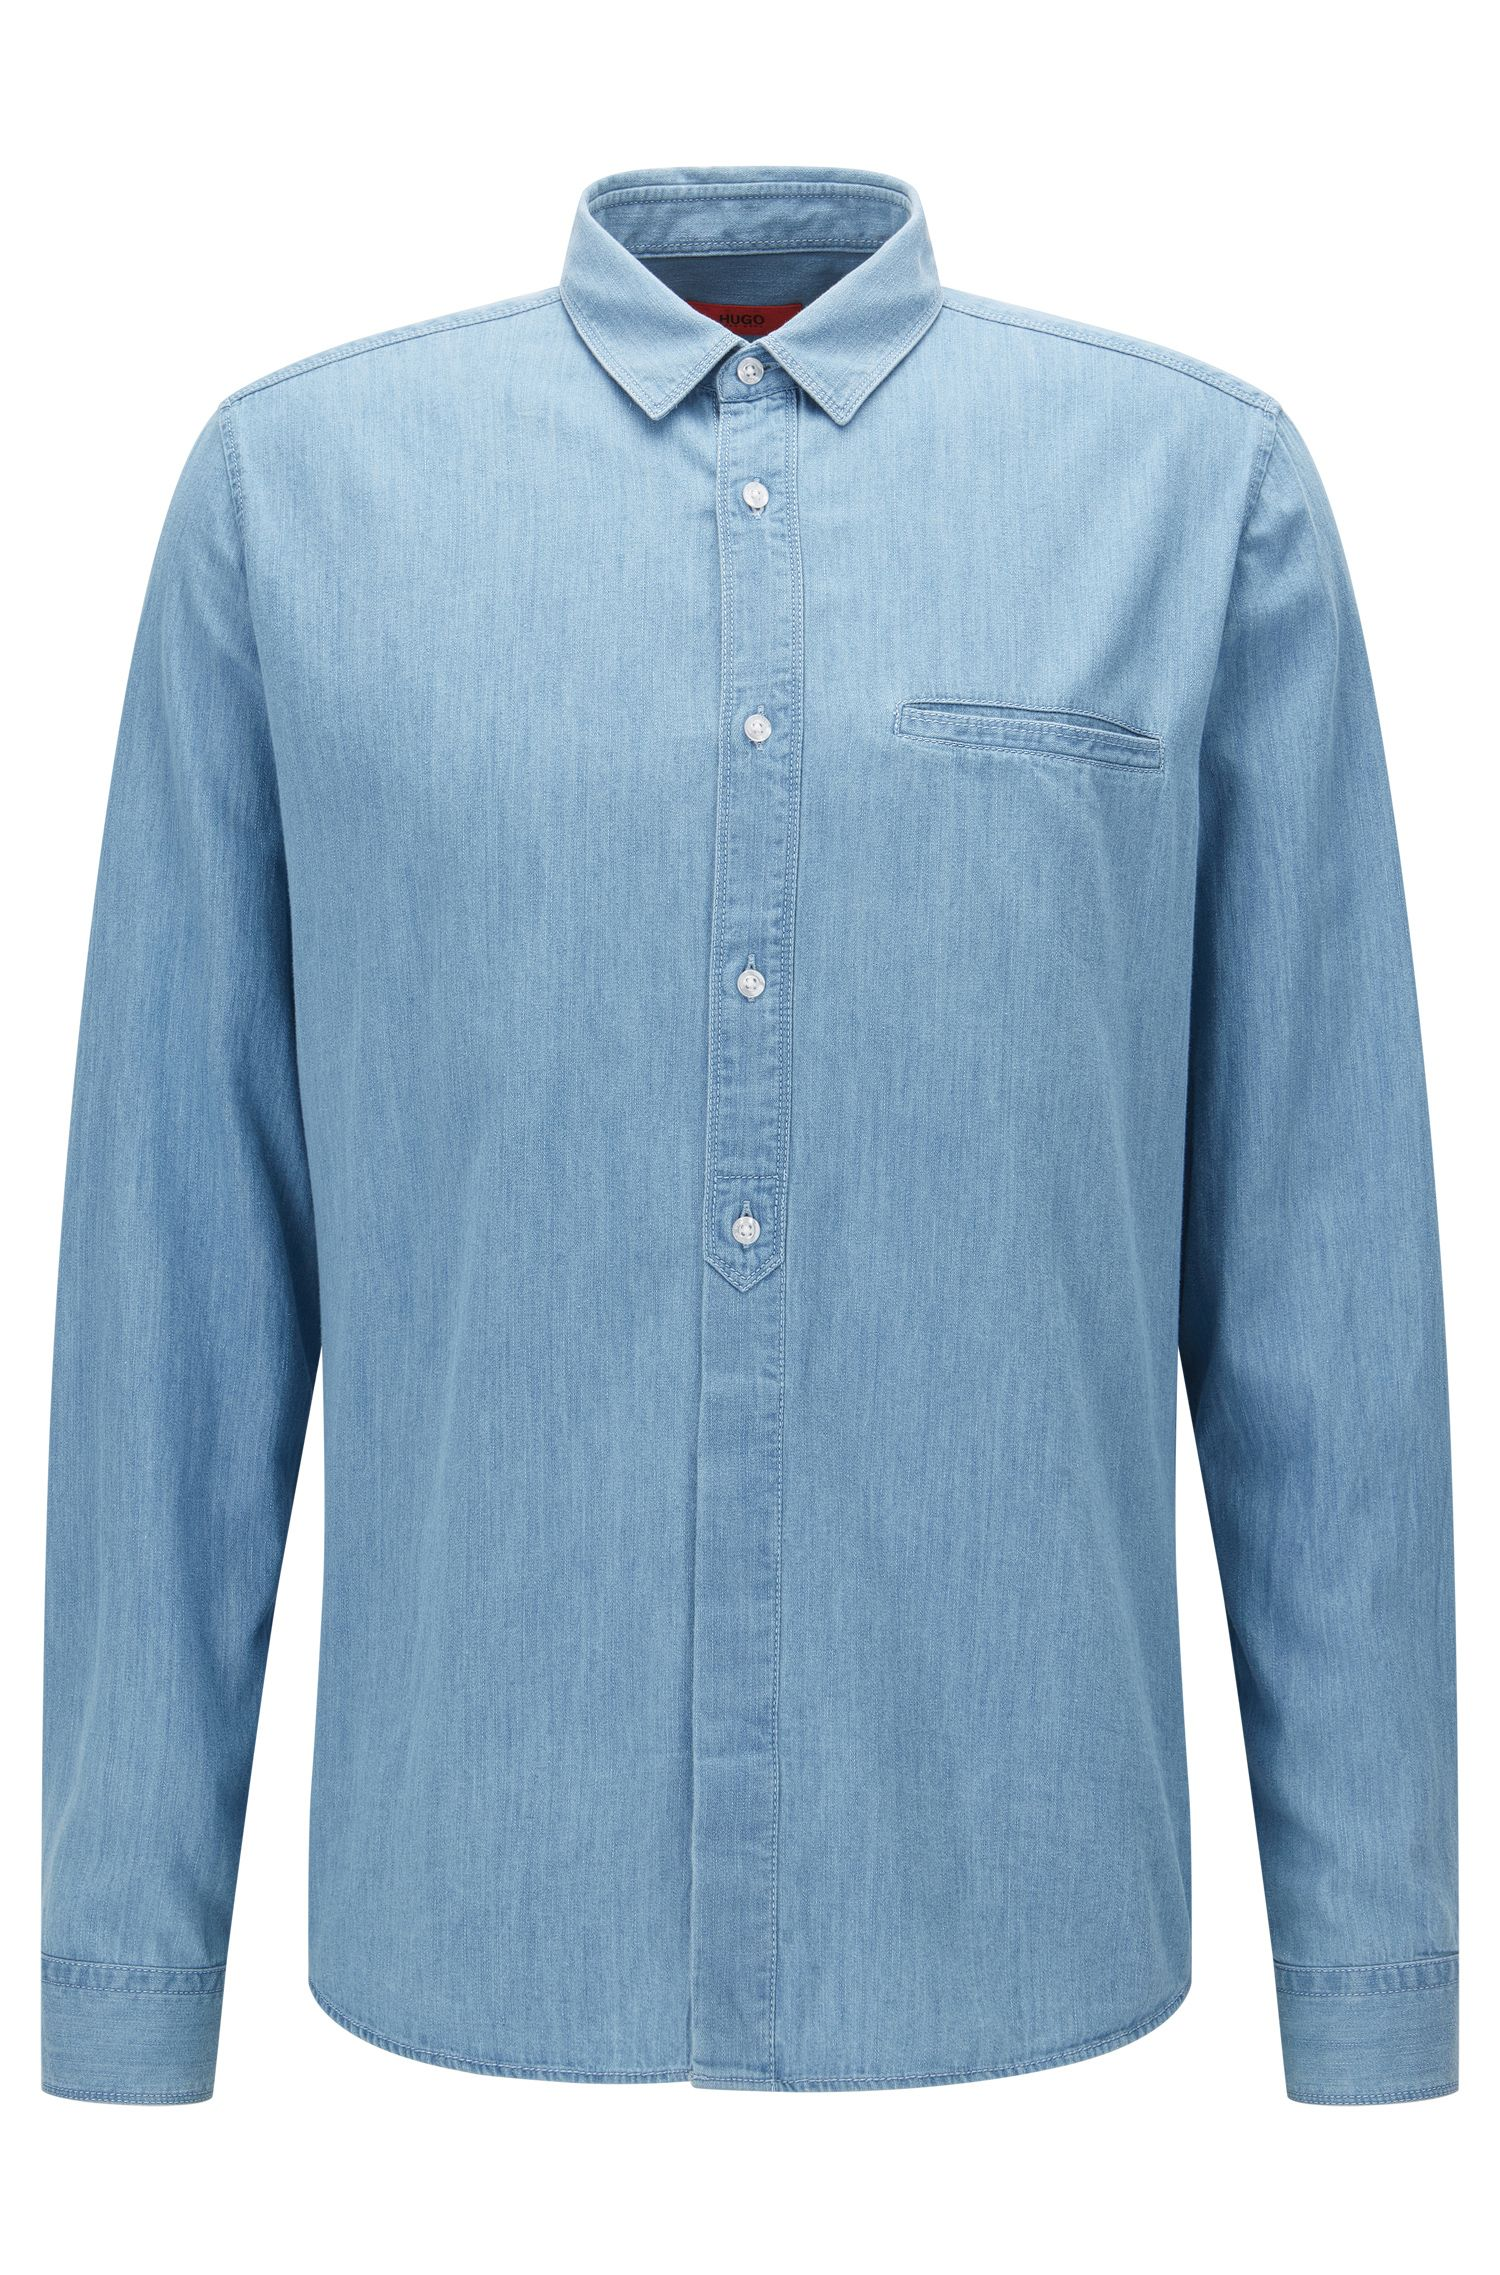 Relaxed-Fit Hemd aus Washed Denim